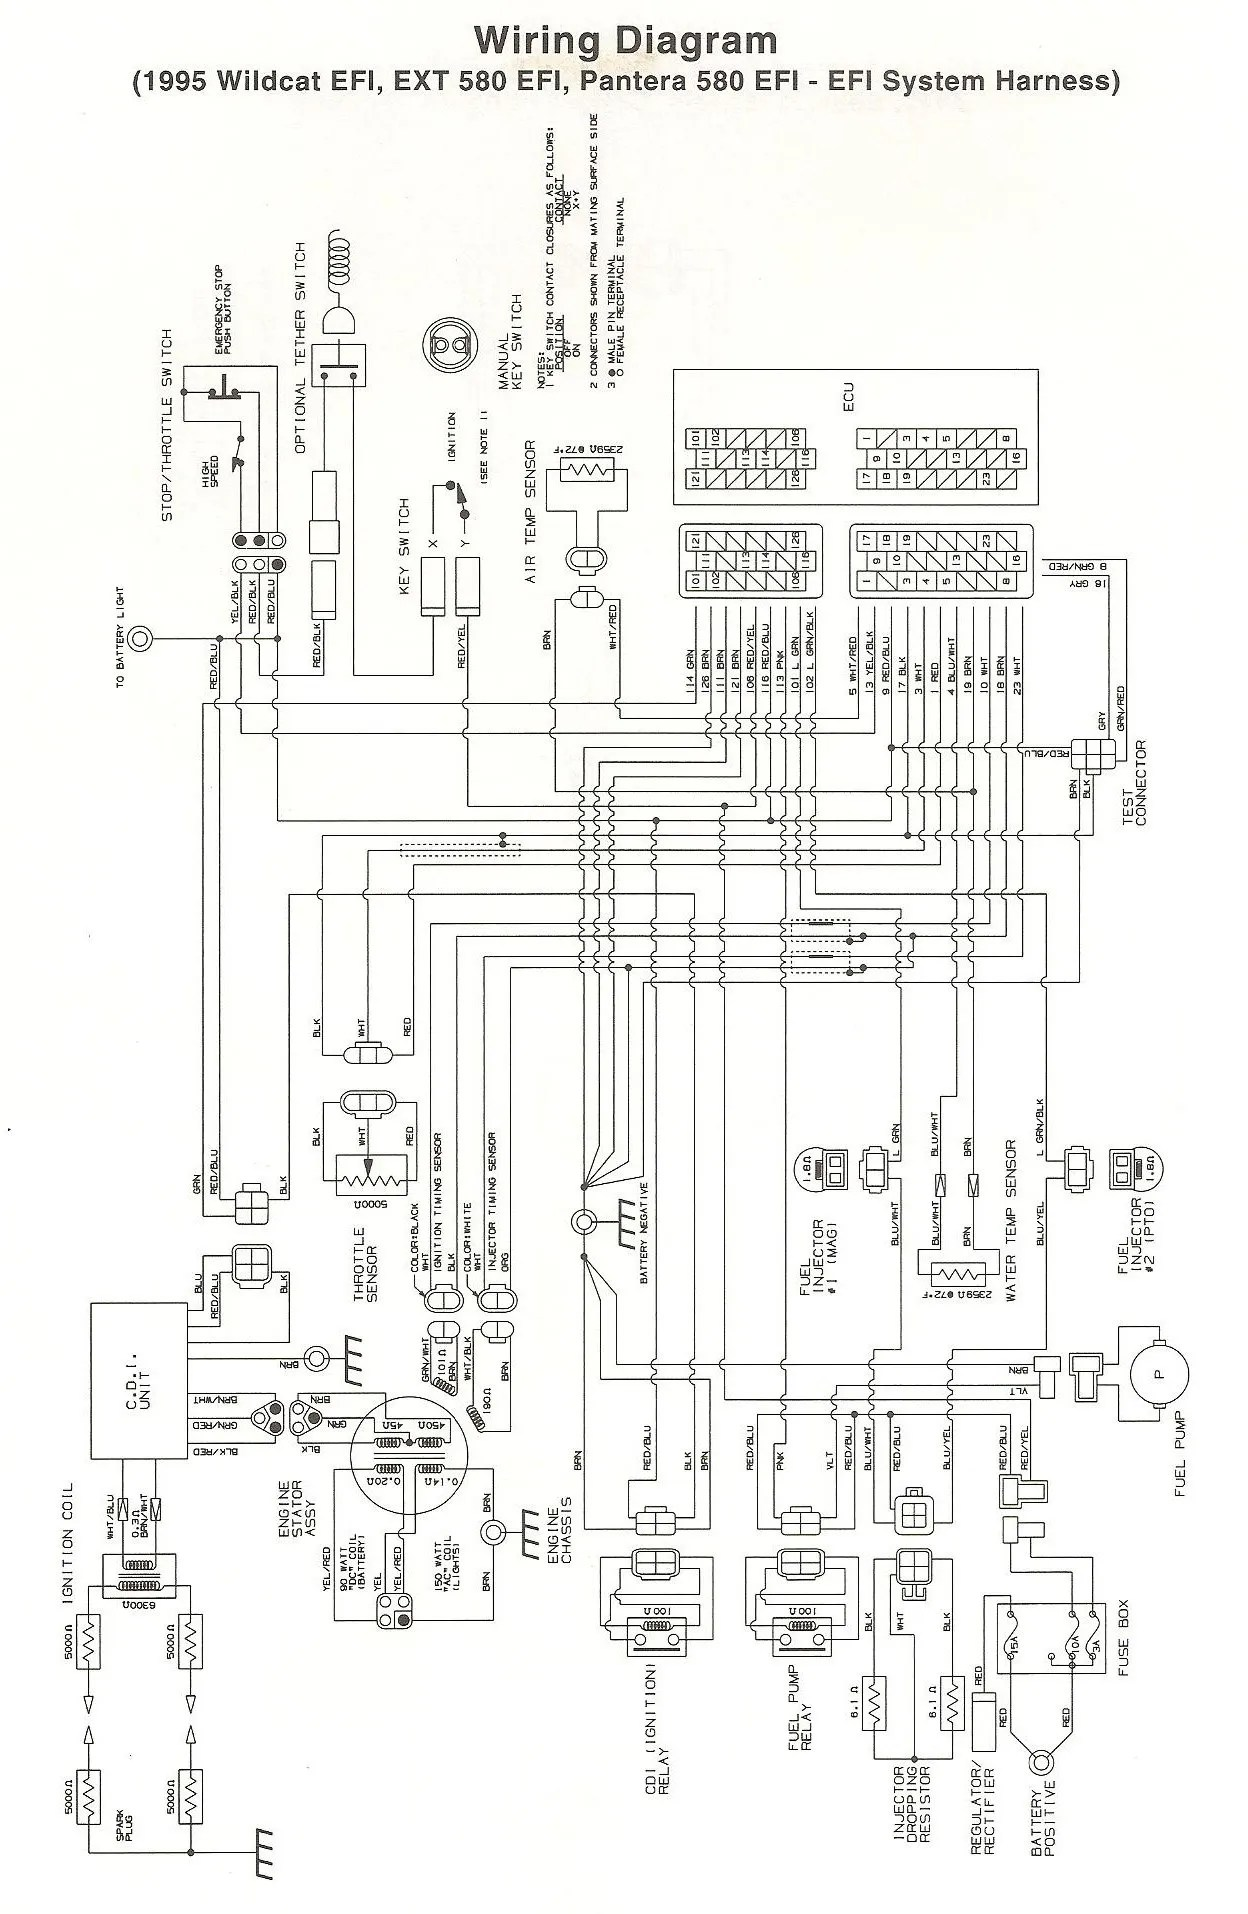 hight resolution of 1992 wildcat 700 wiring diagram wiring diagram data todaywildcat wiring diagram archive of automotive wiring diagram